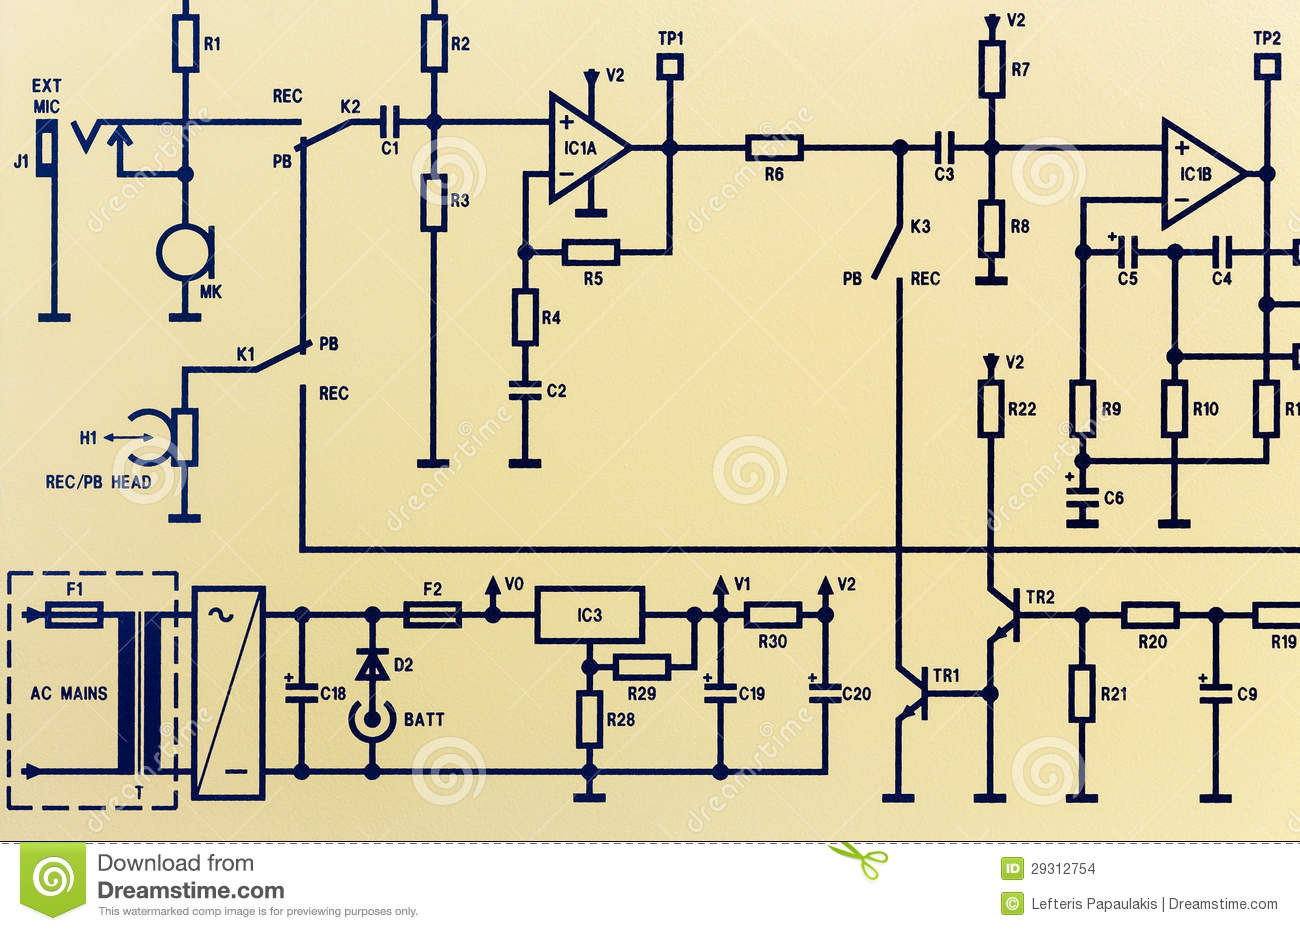 hight resolution of image of an electronic schematic diagram circuitry shown is a portion of a tape recorder